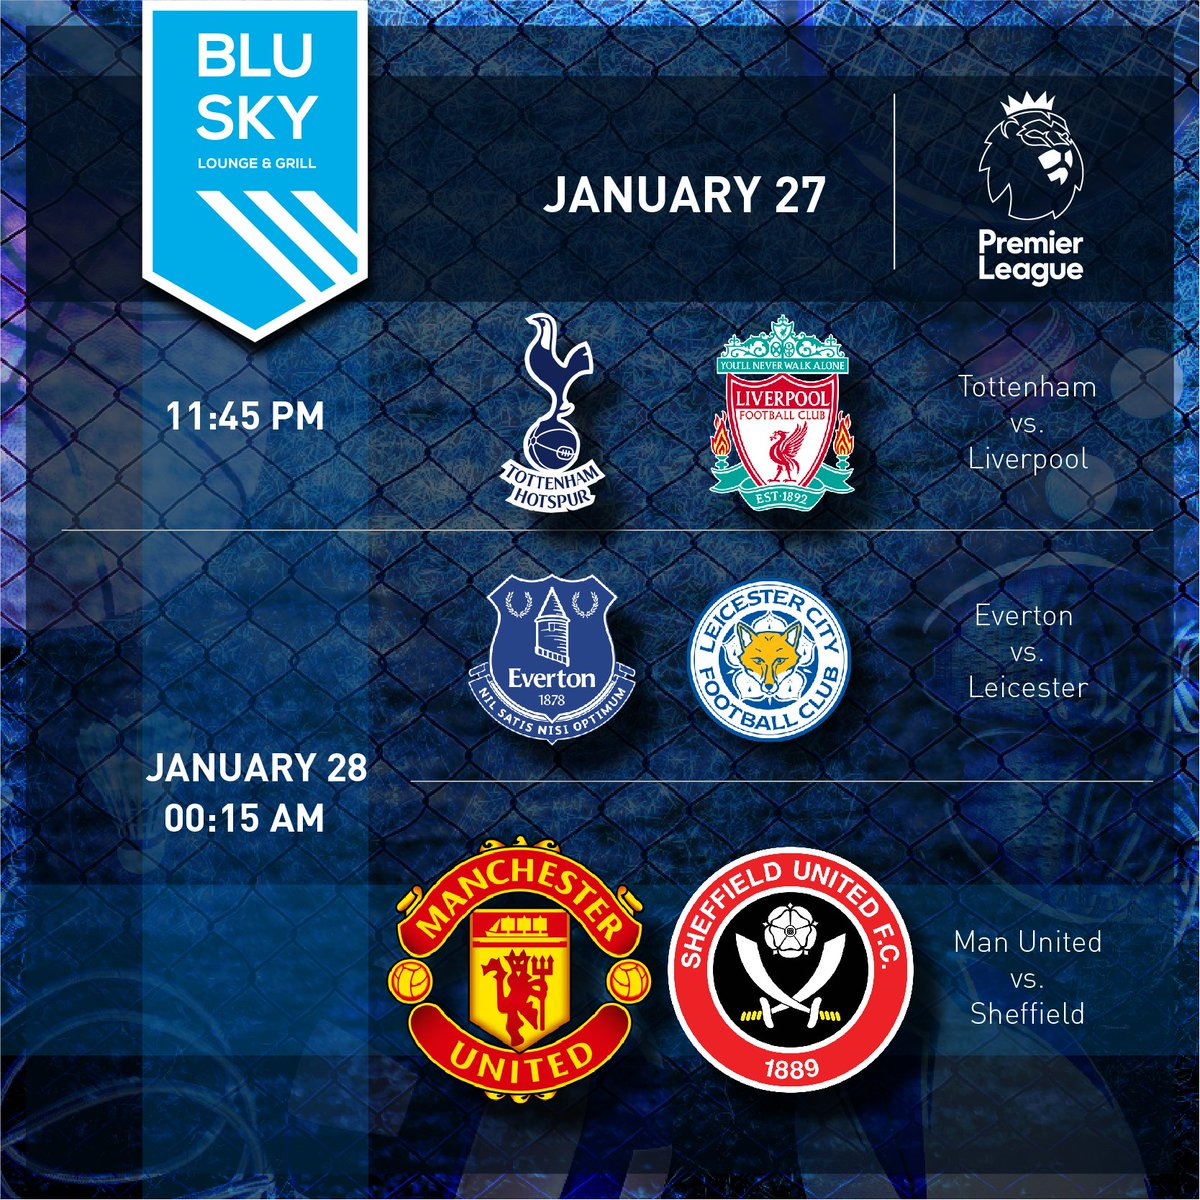 Blu Sky features a ton of #EPL matches tonight.  Games kickoff at 10pm. #burnleyfc #ChelseaFC #wolverhampton #WestHamFC #LiverpoolFC #tottenhamhotspurfc #leicestercityfootballclub #ManchesterUnited #SheffieldFC #sportsbar #inAbuDhabi #abudhabievents #abudhabilife #yoUAE